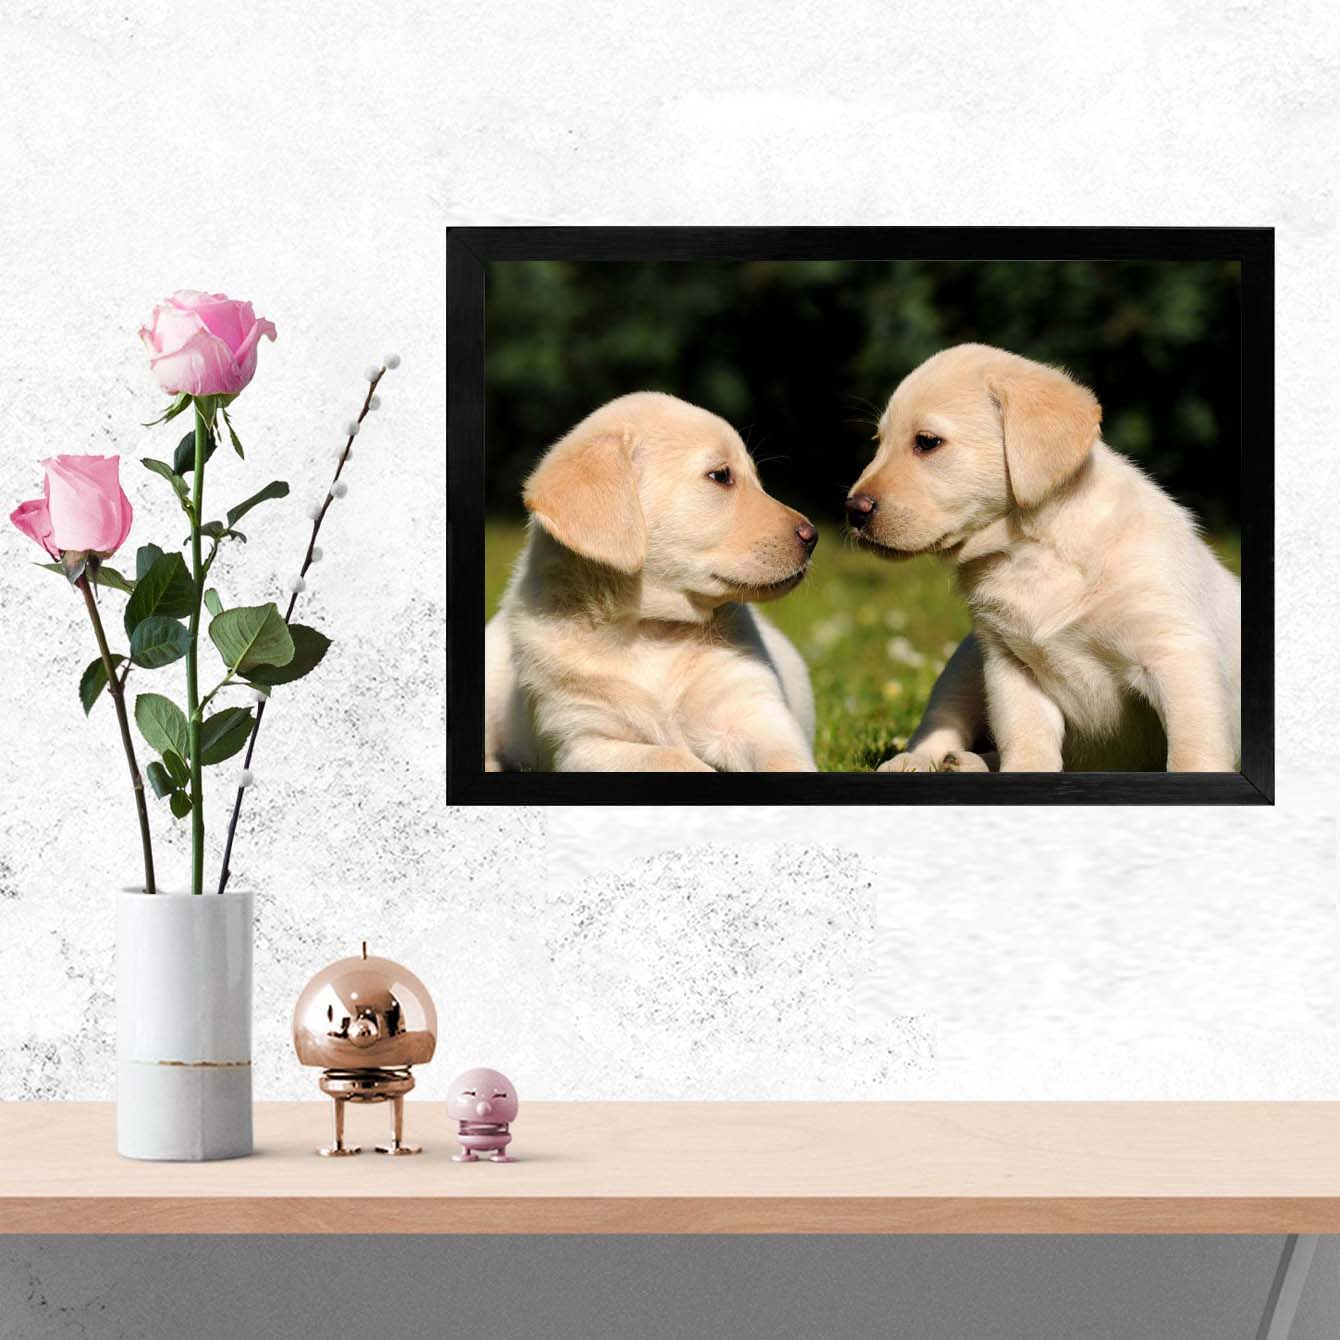 Dogg Animal Glass Framed Posters & Artprints